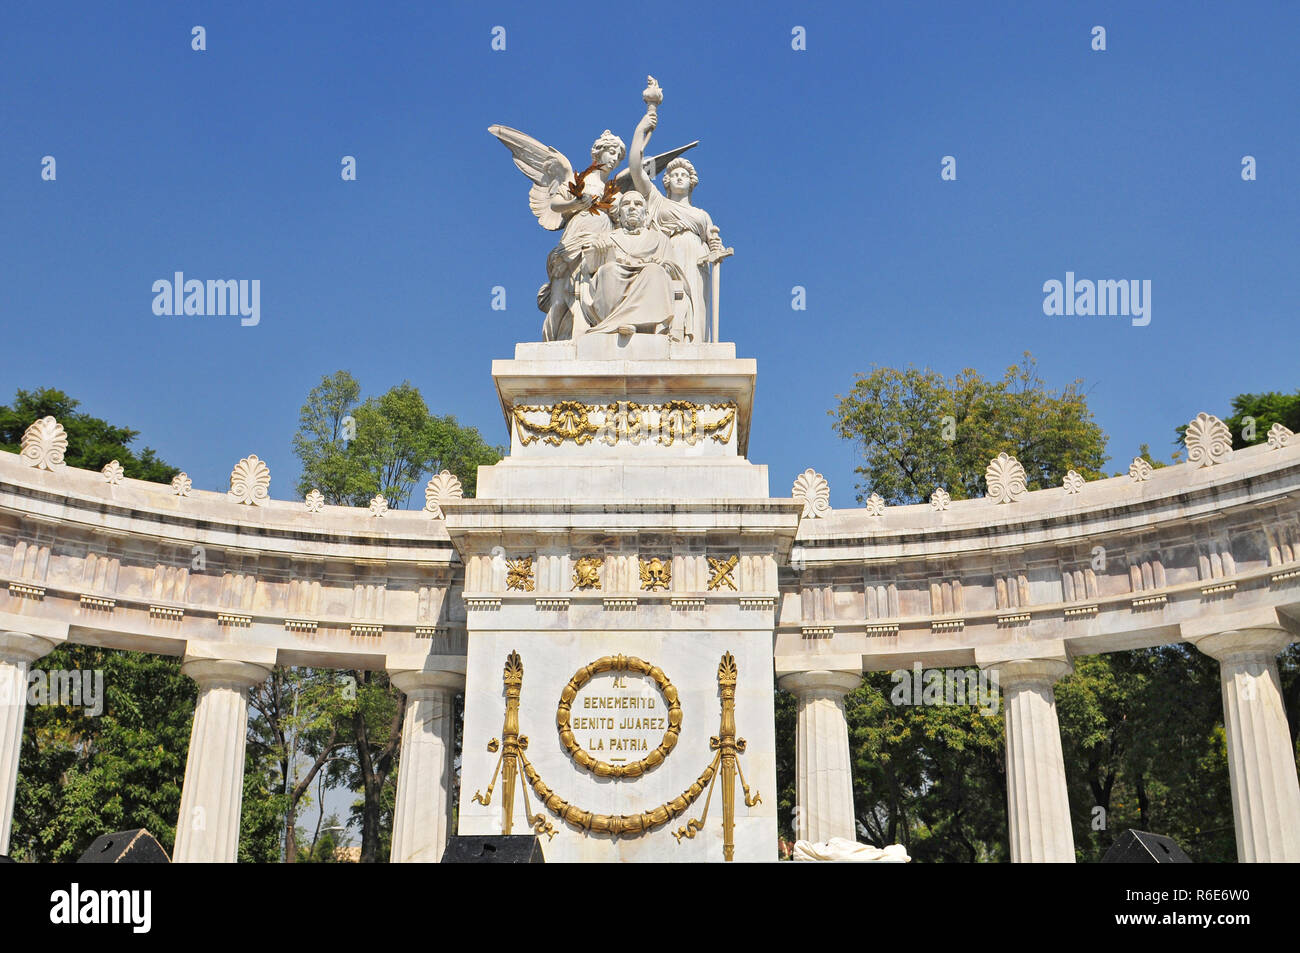 Monument To Benito Juarez, Neoclassical Monument Made Of Marble To Benito Juarez, Mexico'S First Indigenous President Located In The Historic Center O Stock Photo